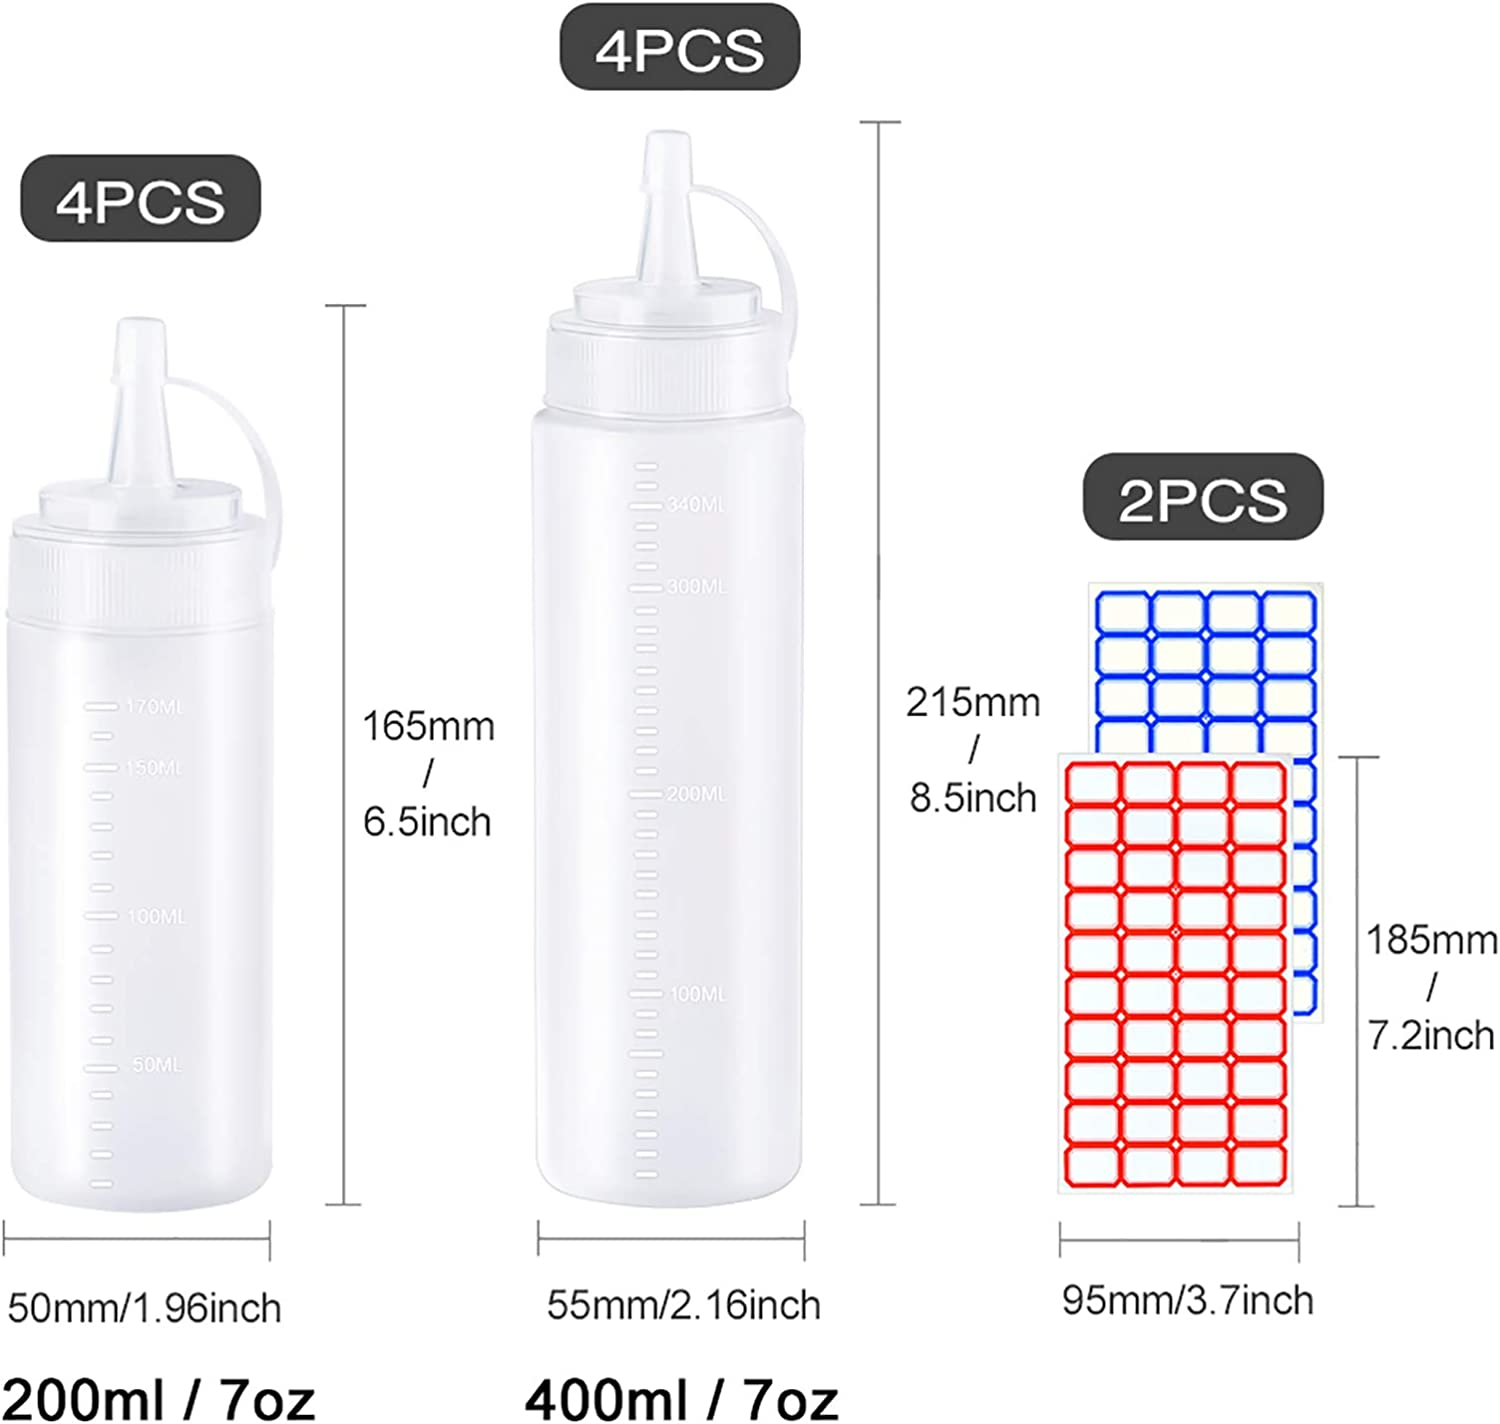 8 Pcs Plastic Squeeze Bottles with Cap Lids 200Ml and 400Ml, 4 Pieces of Each Condiment Bottle Dispenser Multi Purpose Squeeze Bottle for Ketchup Soy Sauce Salad Dressing